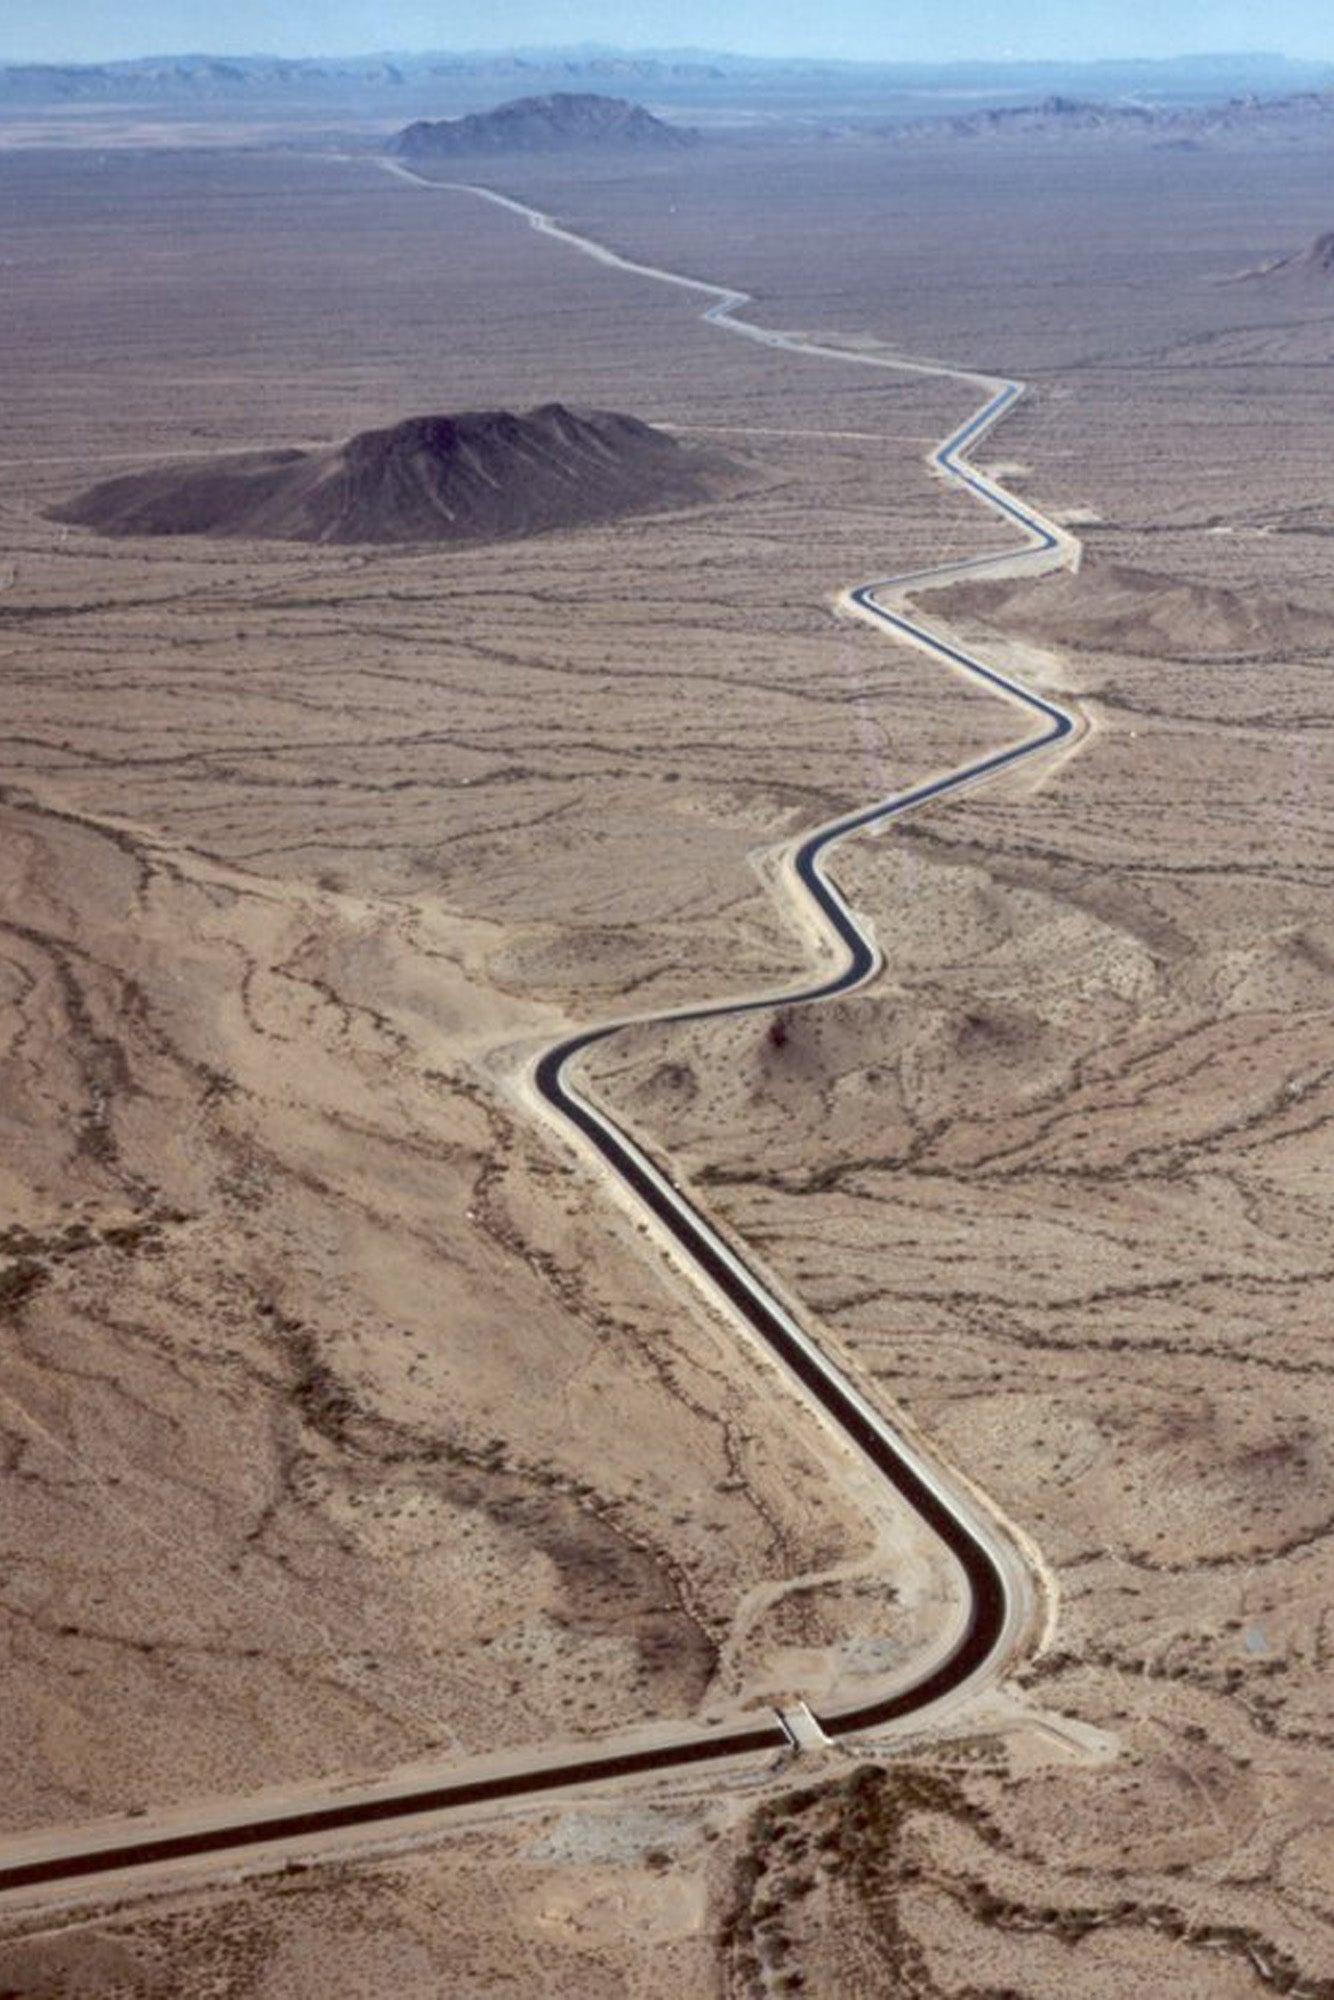 View of water canals near Phoenix